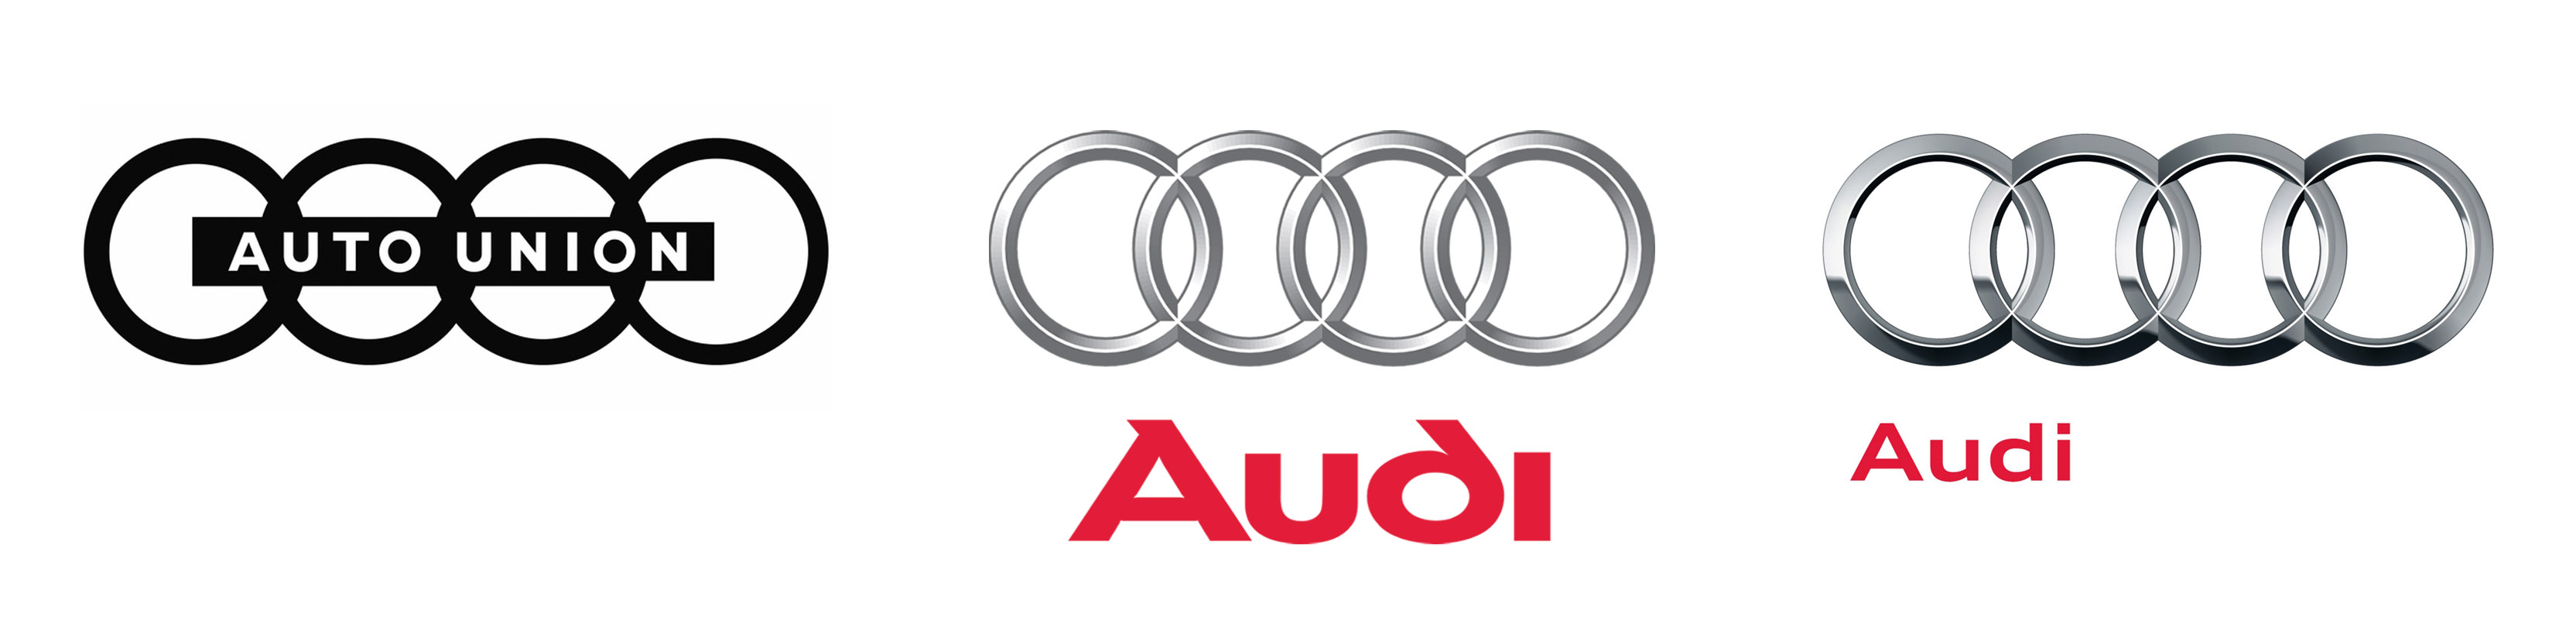 Porsche Crest Audi Rings And Prestige Imports Badge A Rich History